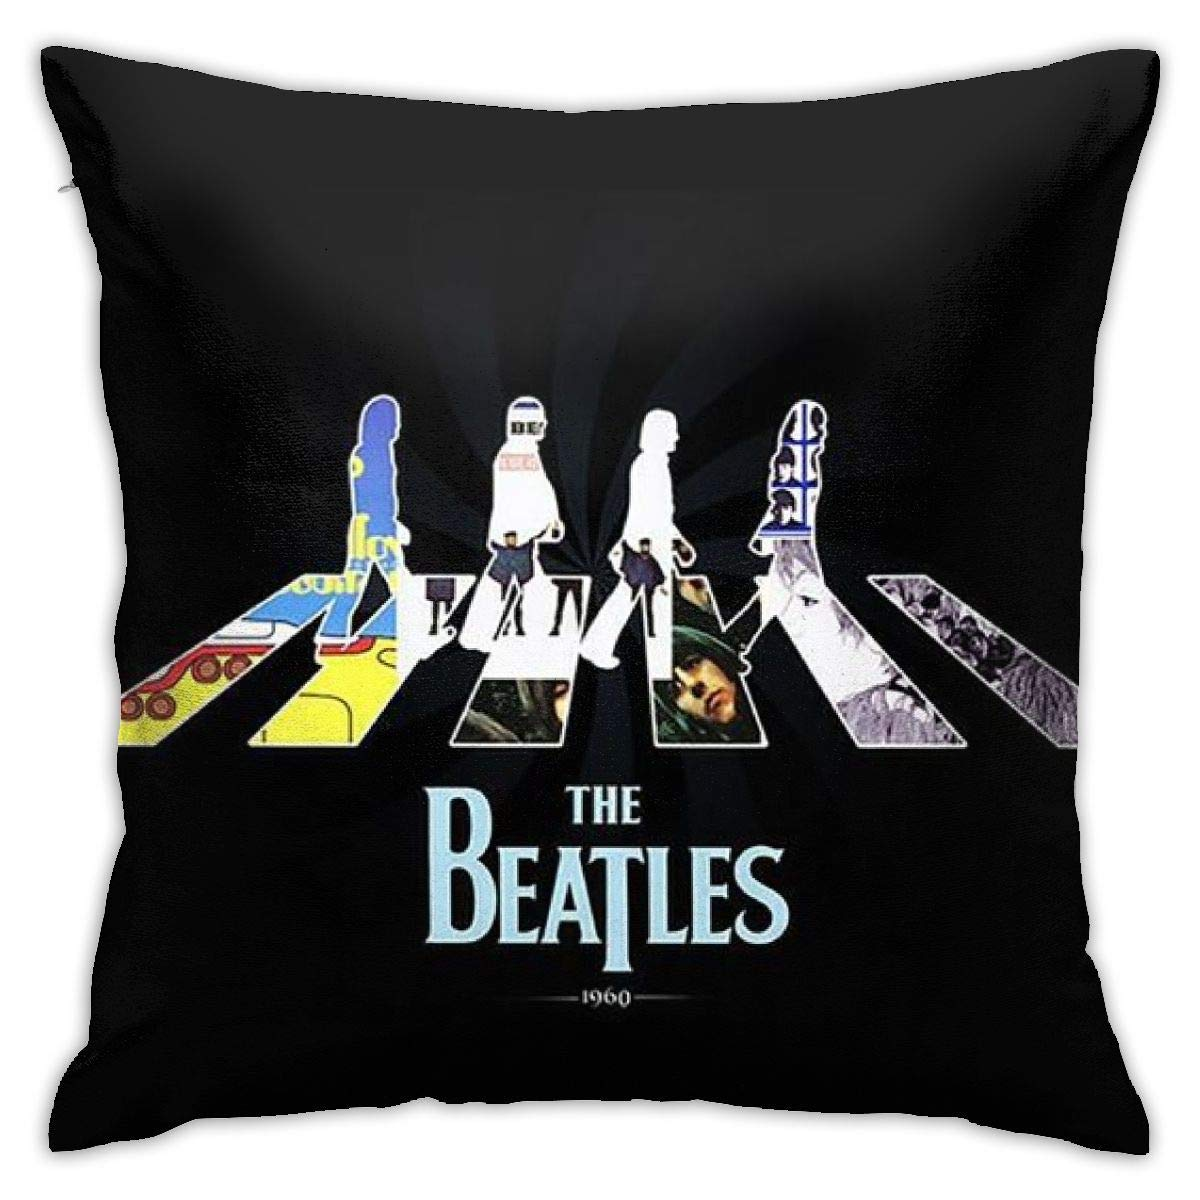 Amazon.com: HHenry The Beatles - Funda de cojín de algodón ...